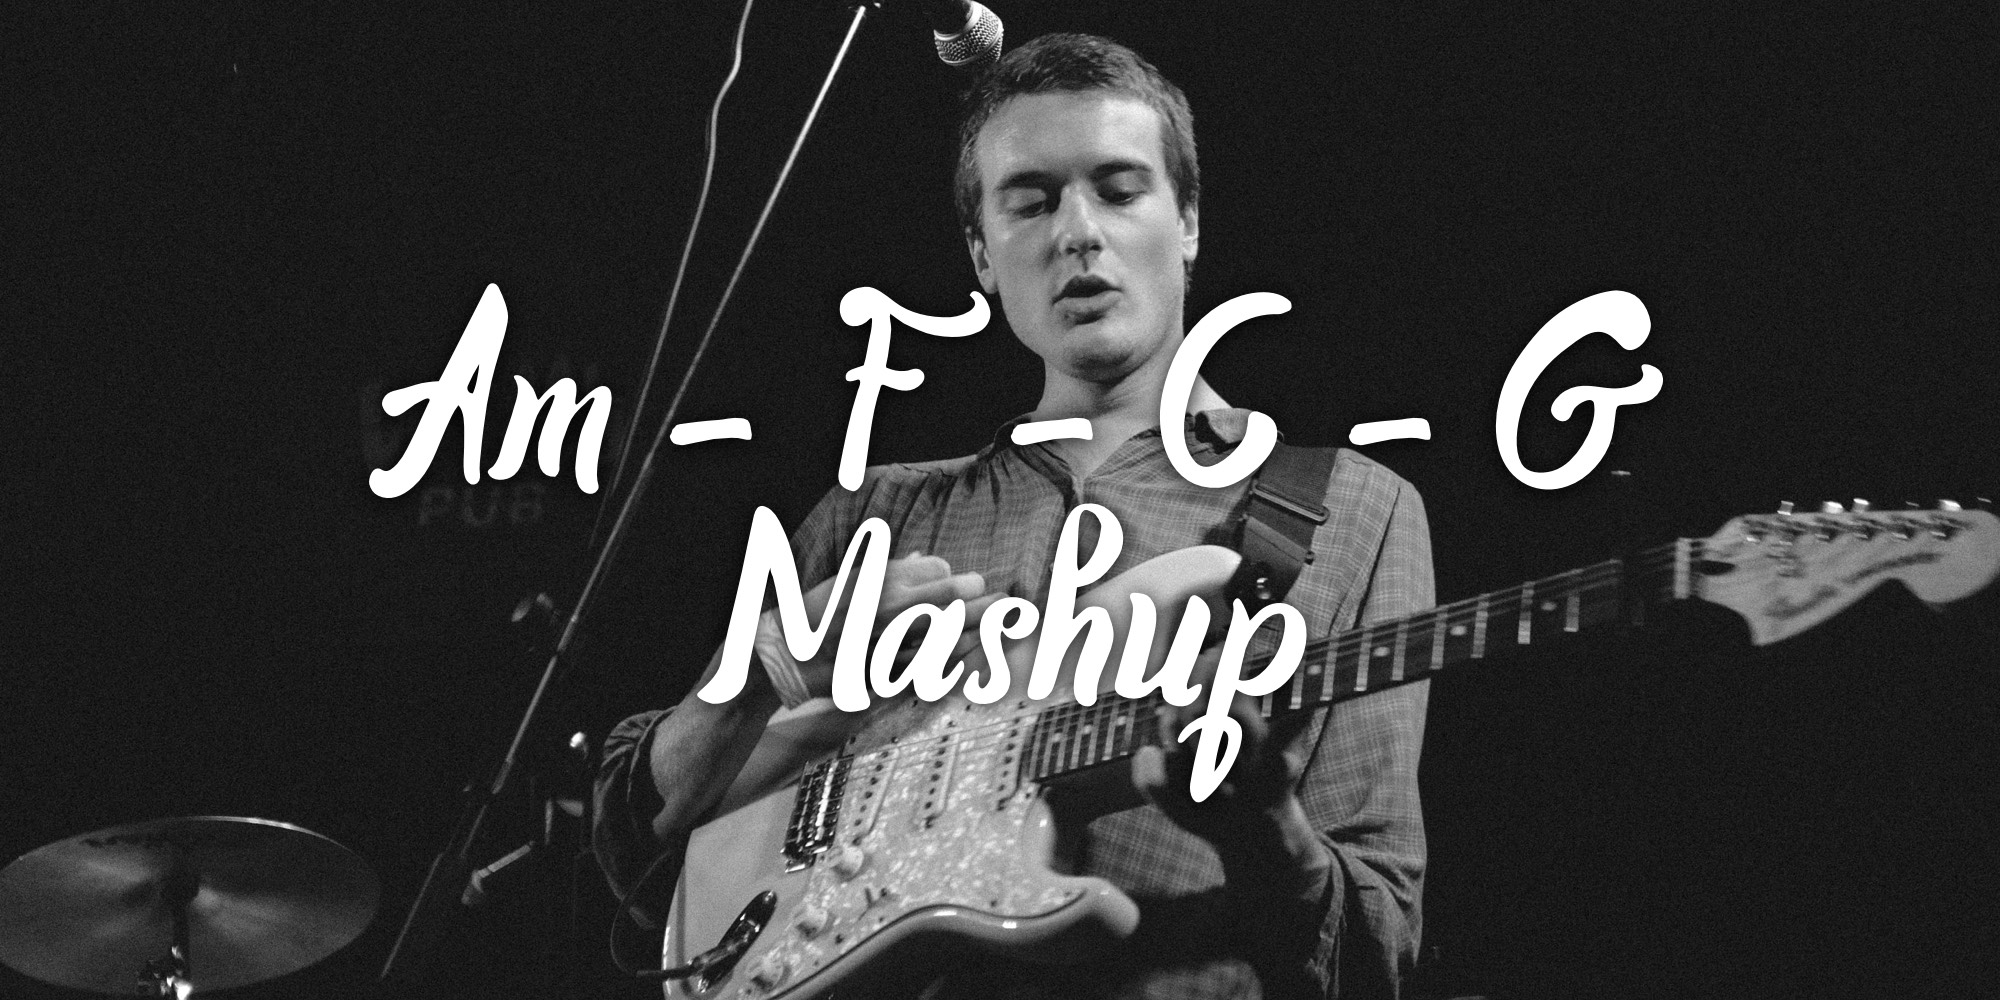 Am F C G Mashup Tab Collections Ultimate Guitar